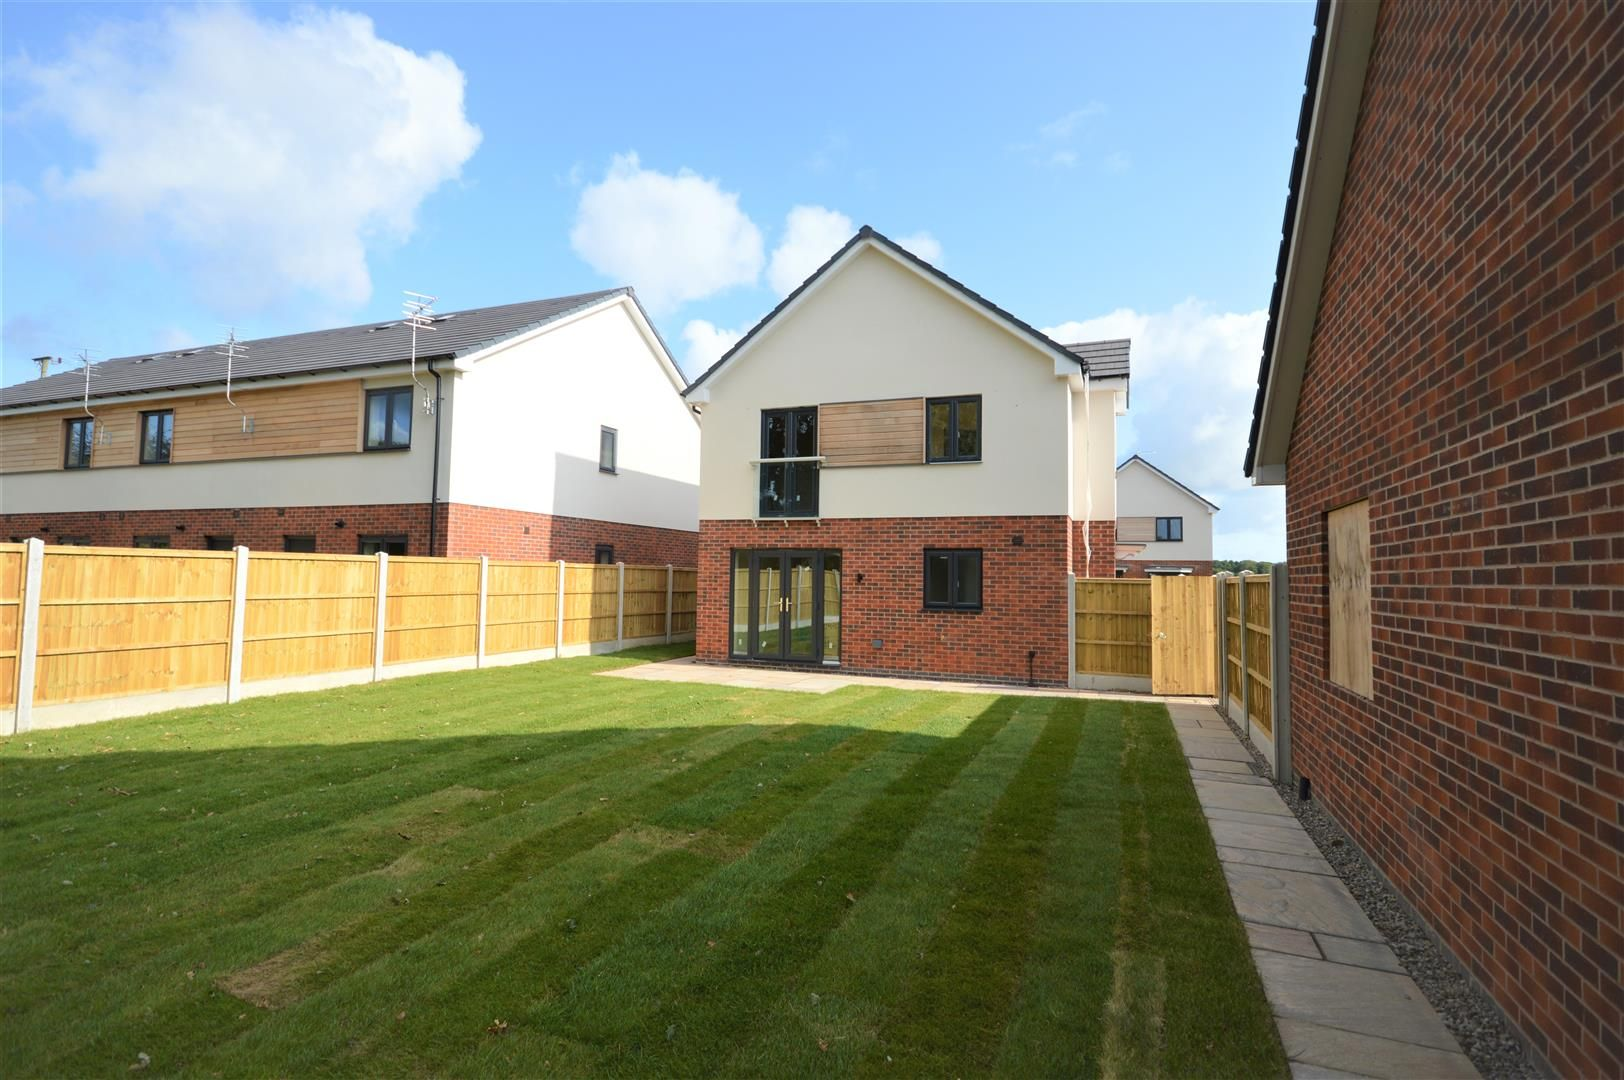 4 bed detached for sale in Kingsland  - Property Image 12